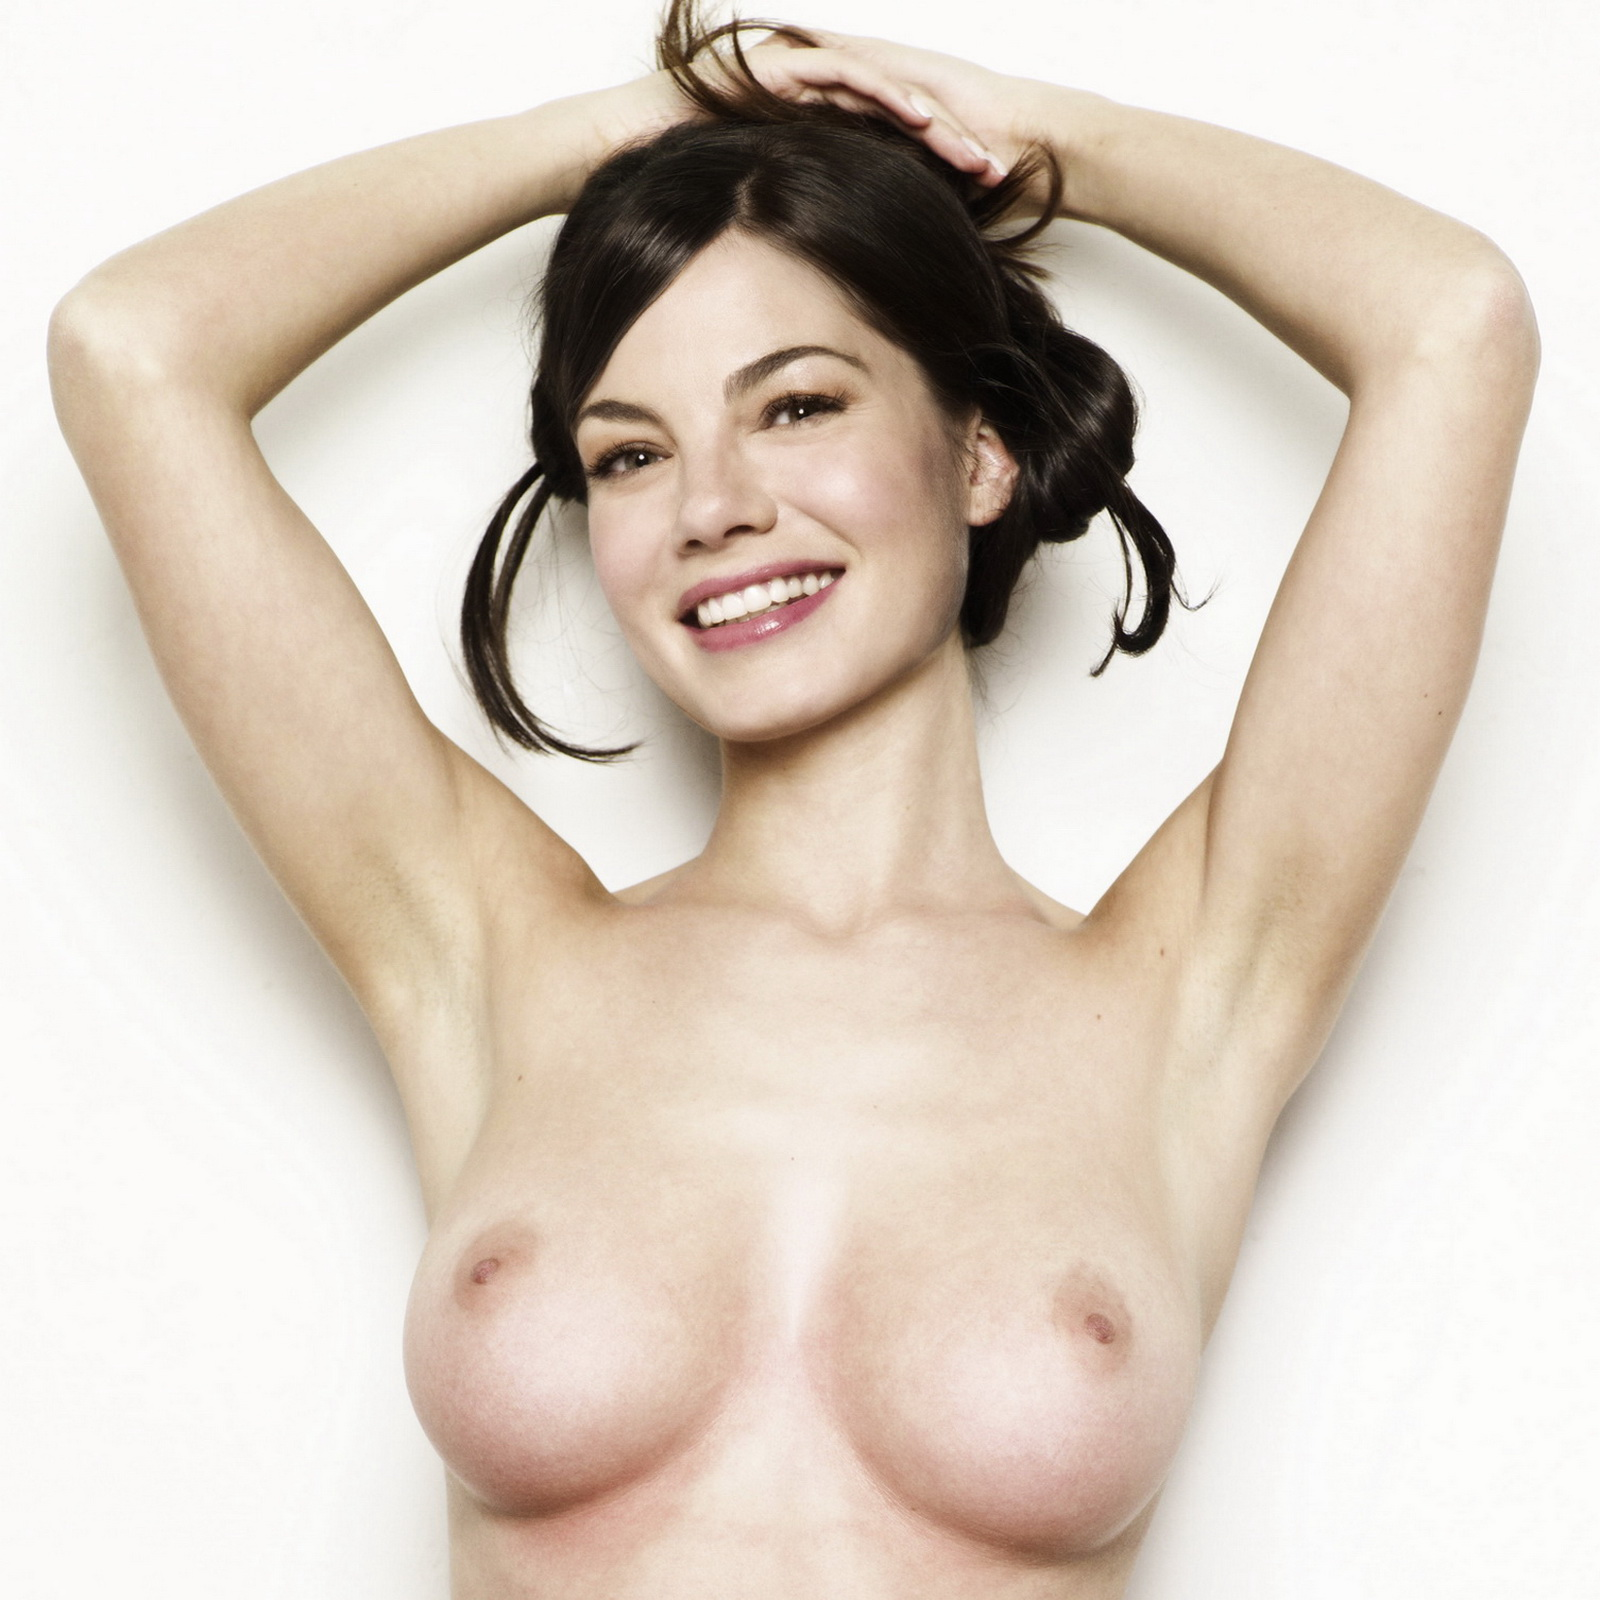 Michelle monaghan showering amp soaping her big tits 5